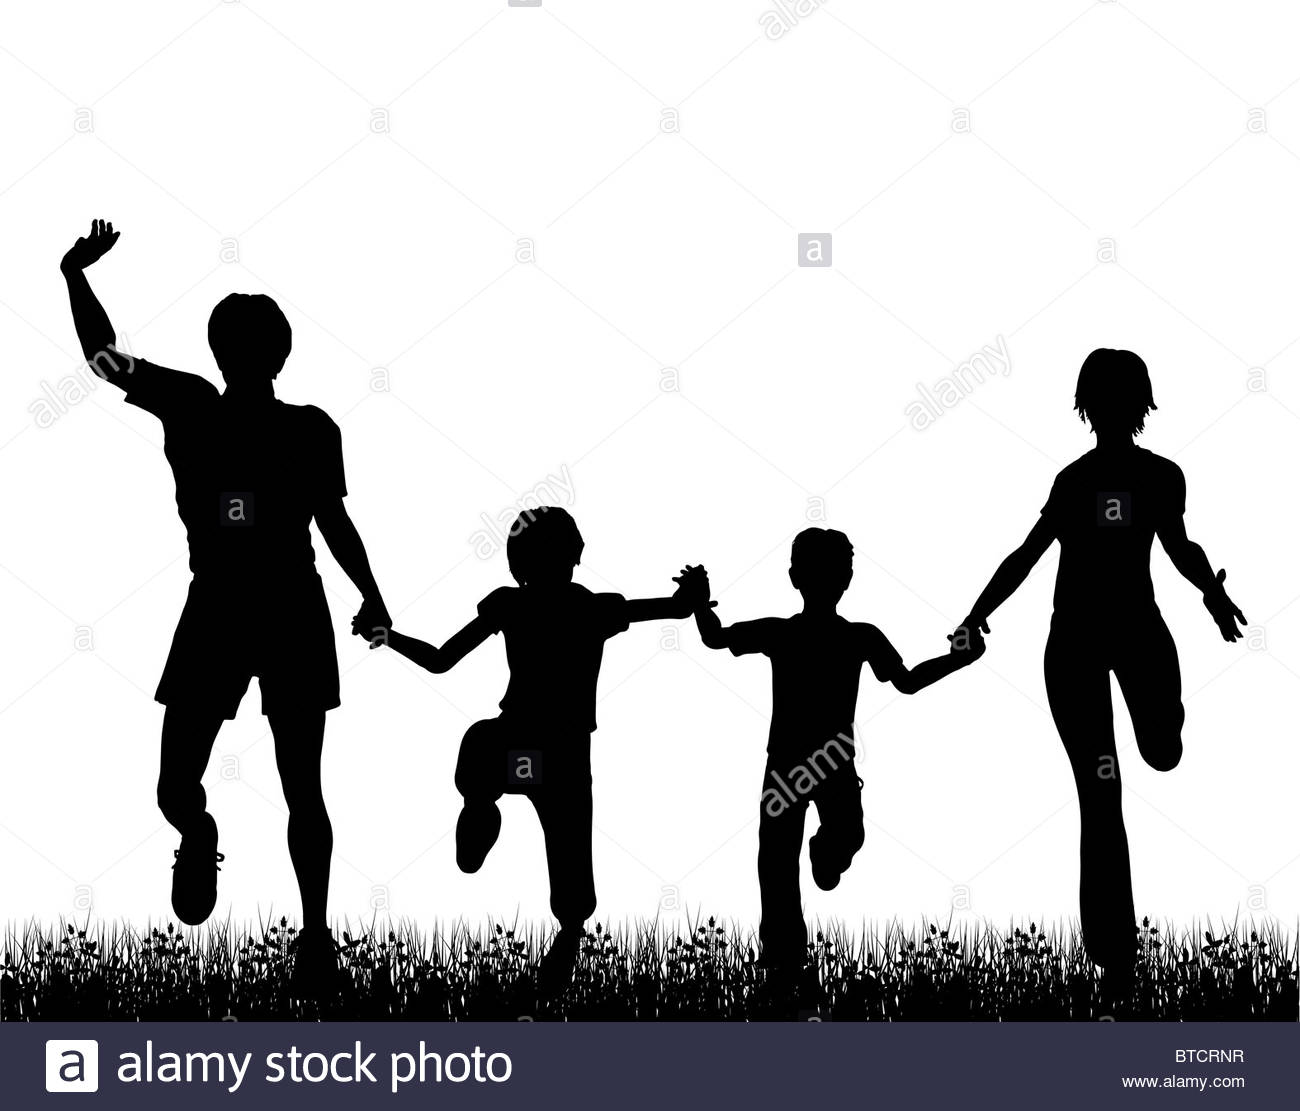 1300x1111 Illustrated Silhouette Of A Happy Family Running Through Grass